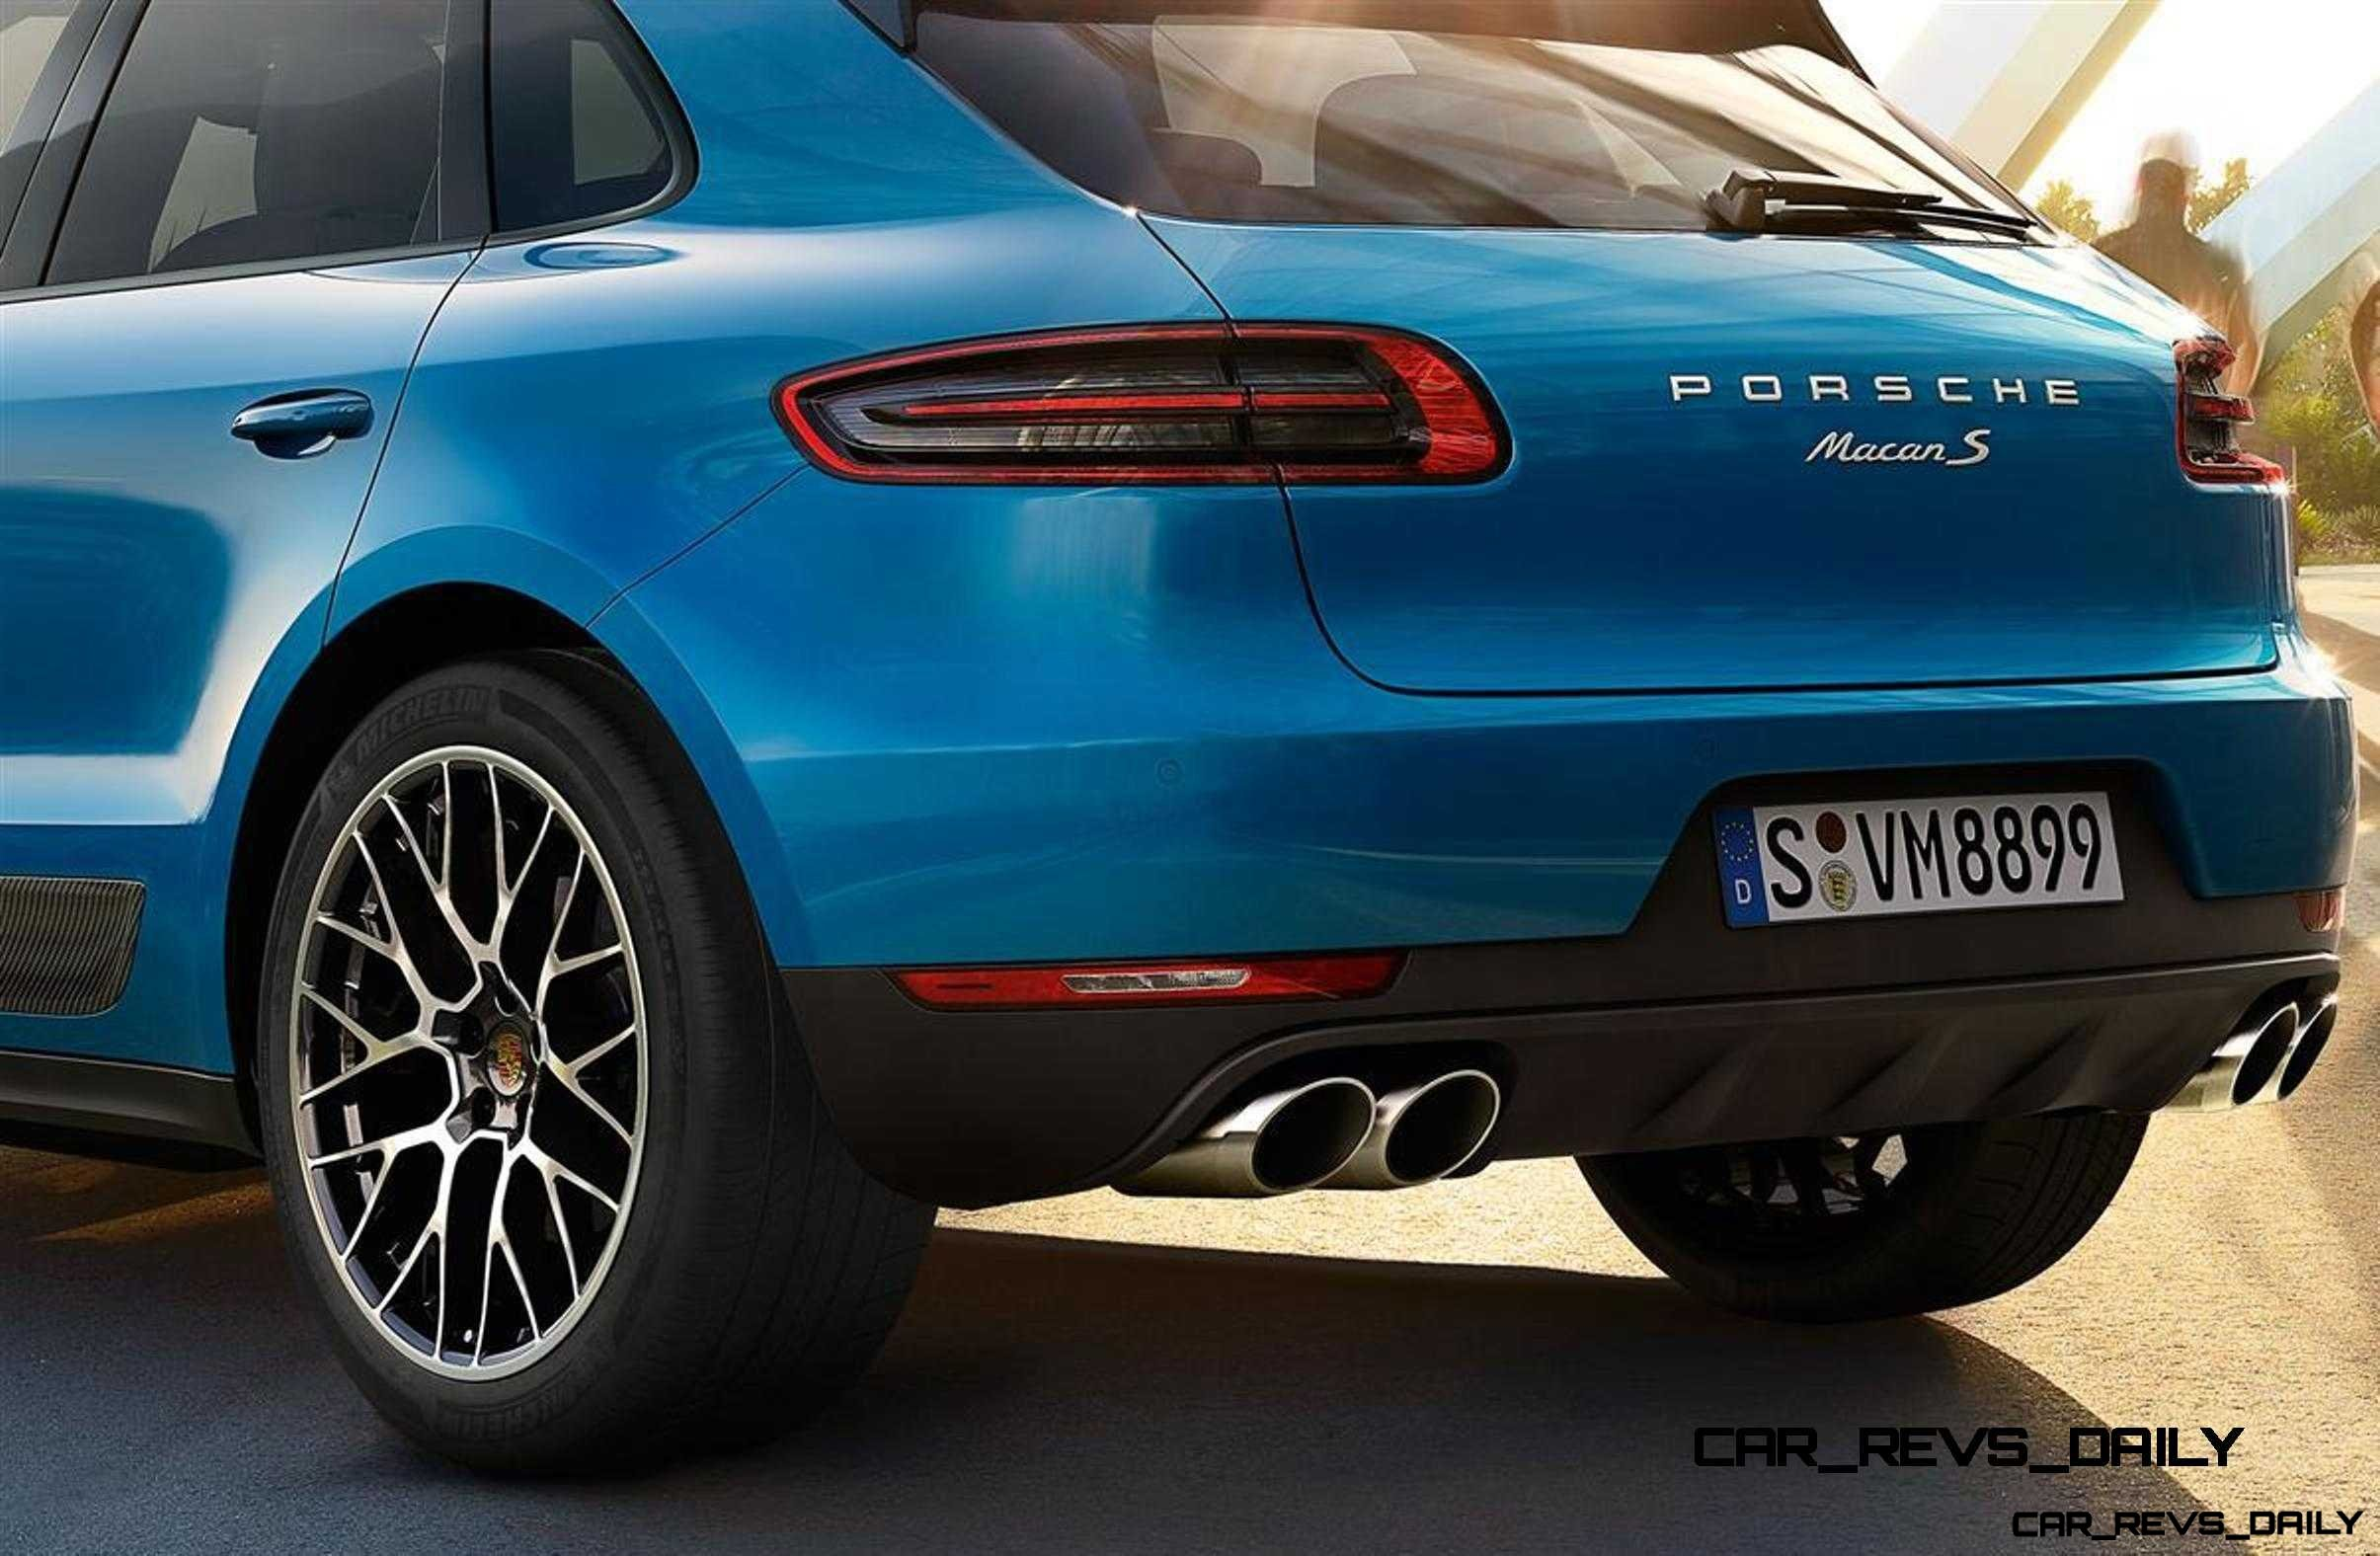 2015 Porsche Macan - Latest Images - CarRevsDaily.com 46